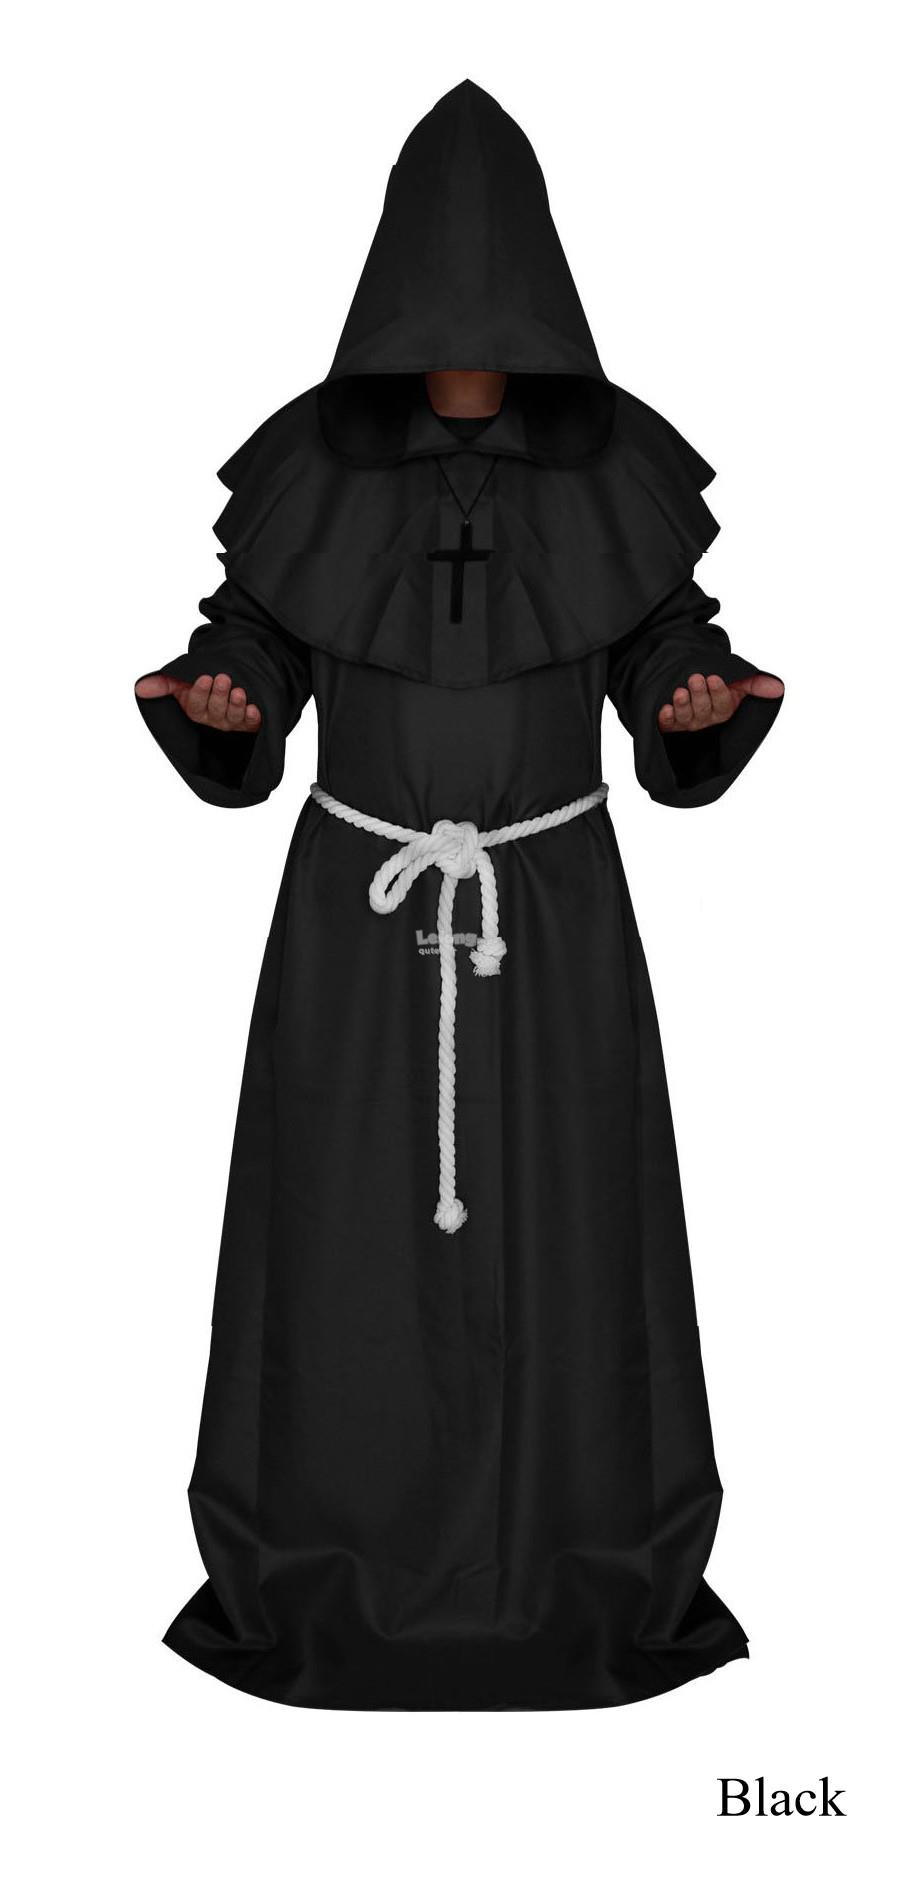 Cosplay 2018J – Gothic Robe for him